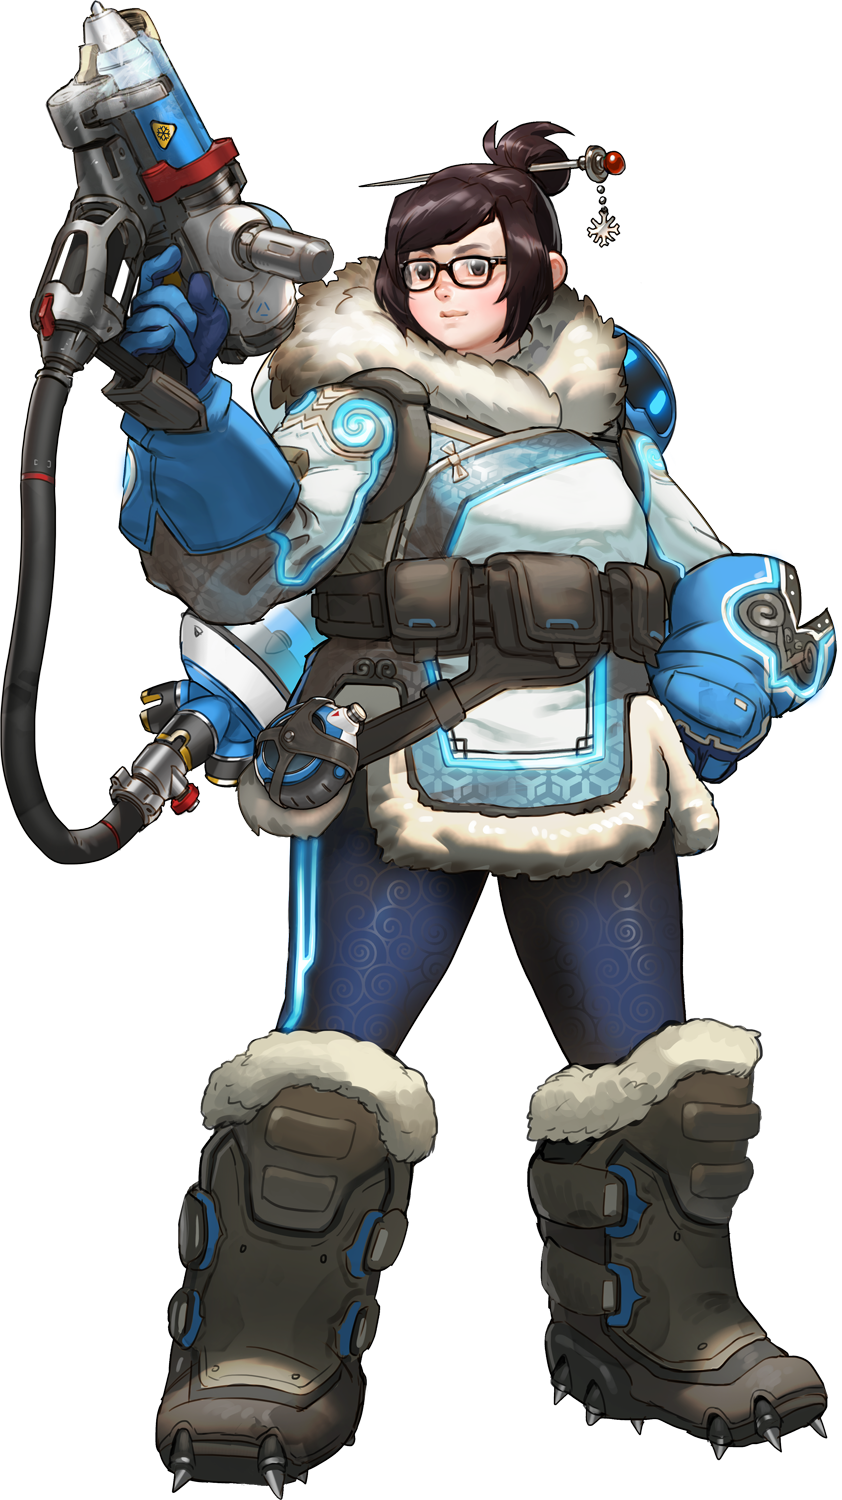 May Overwatch